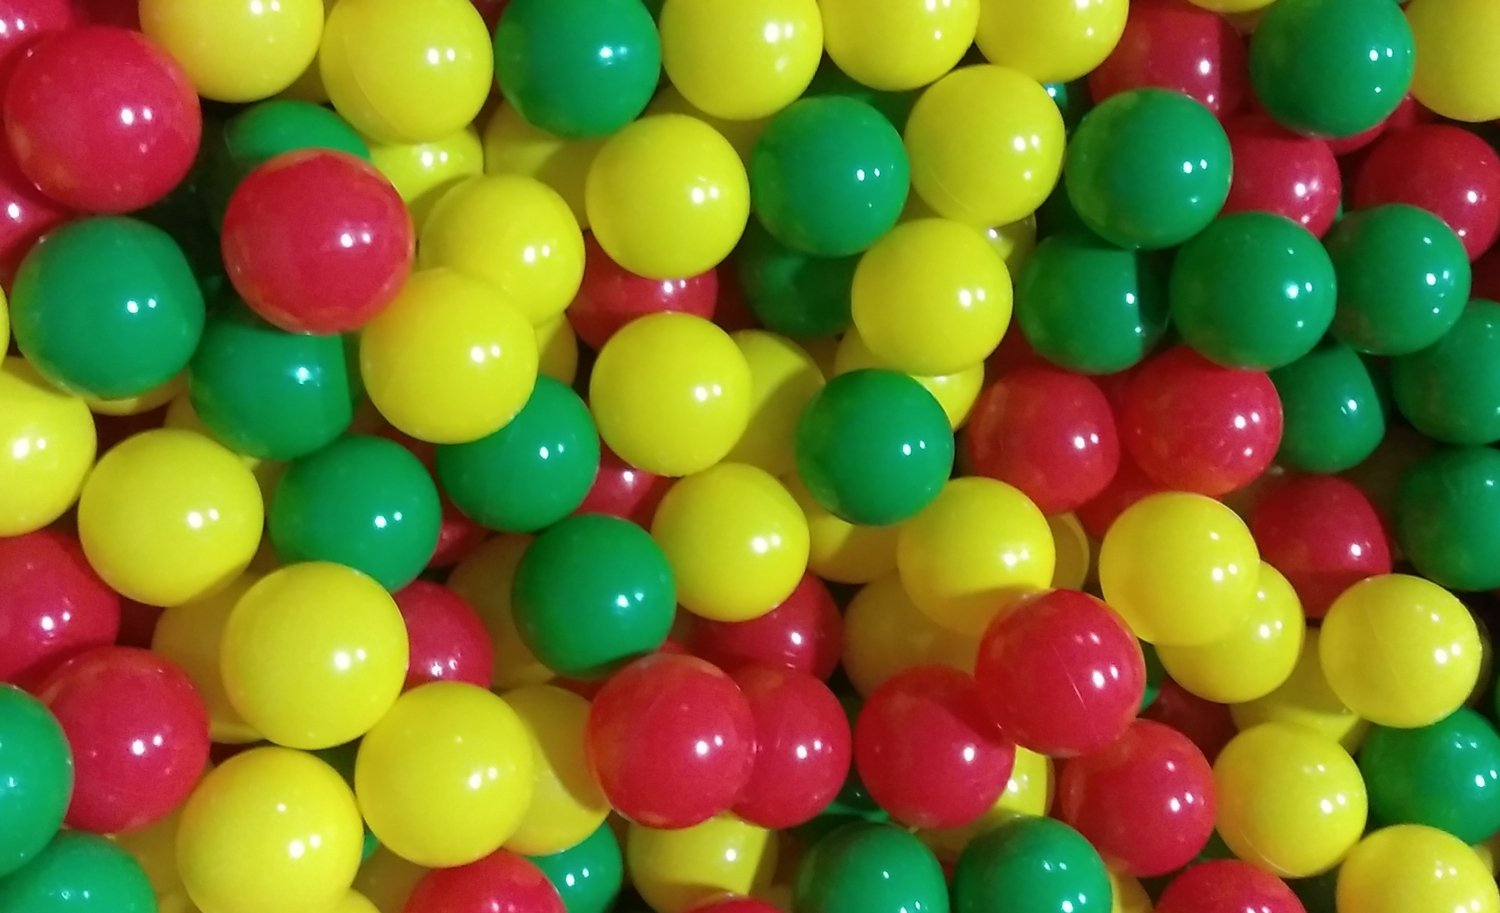 My Balls Pack of 600 Jumbo 3'' Red/Yellow/Green Colors of Season Heavy Duty Commercial Grade Crush-Proof Ball Pit Balls - Phthalate Free BPA Free Non-Recycled Plastic by My Balls (Image #4)